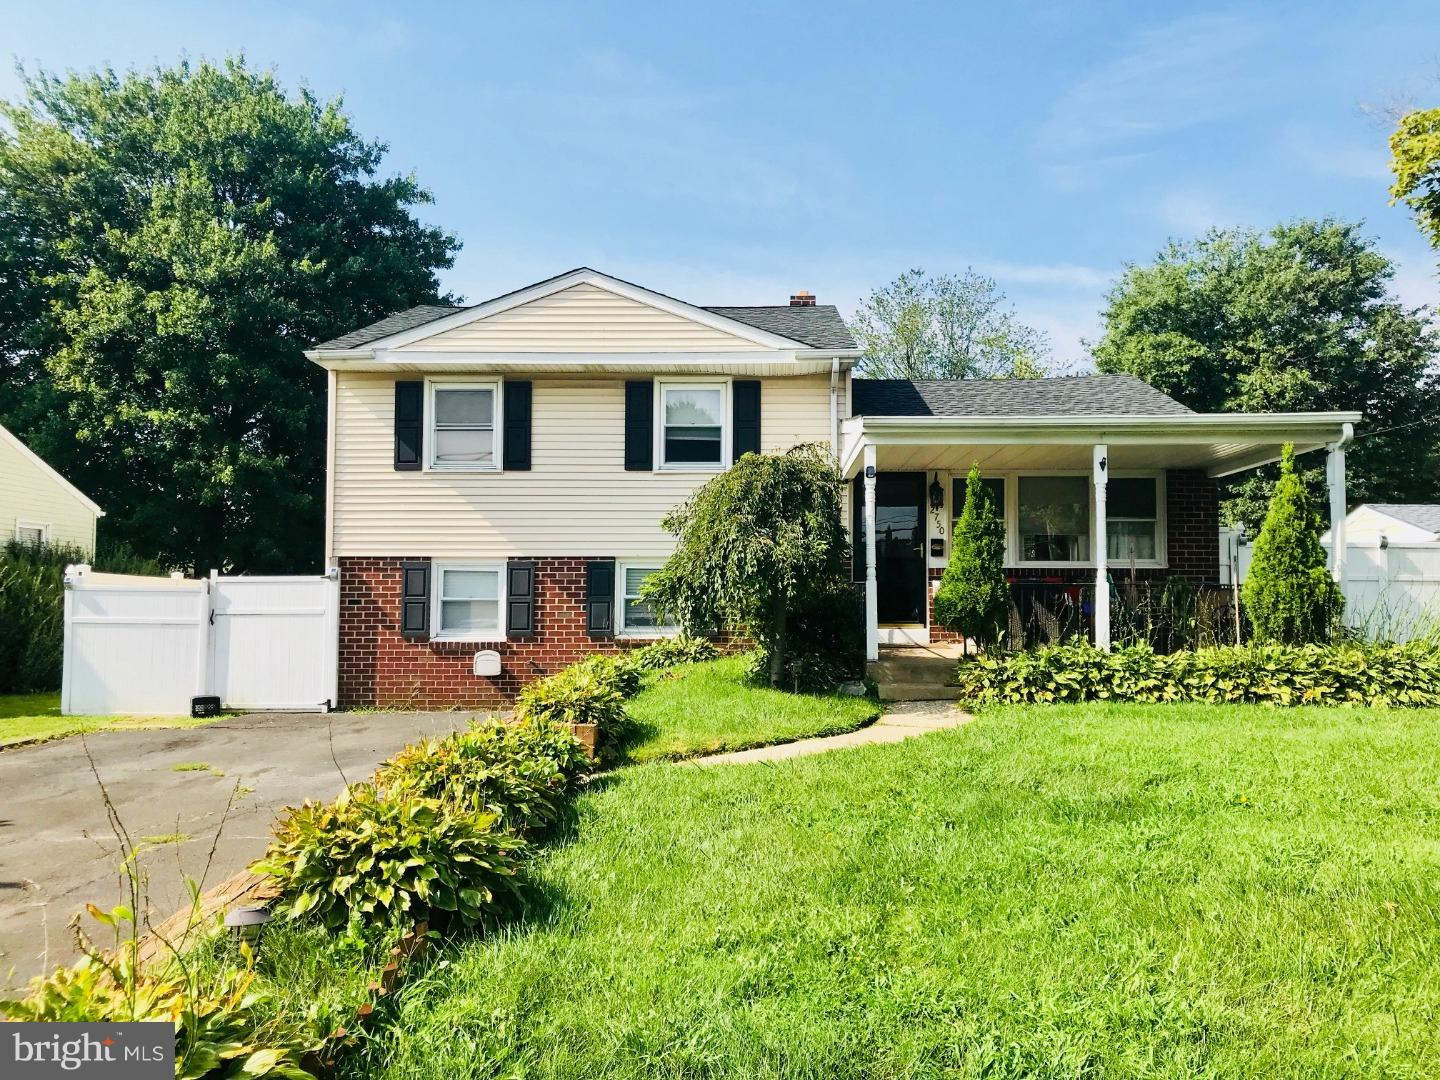 Single Family Home for Rent at 2750 E COUNTY LINE Road Hatboro, Pennsylvania 19040 United States